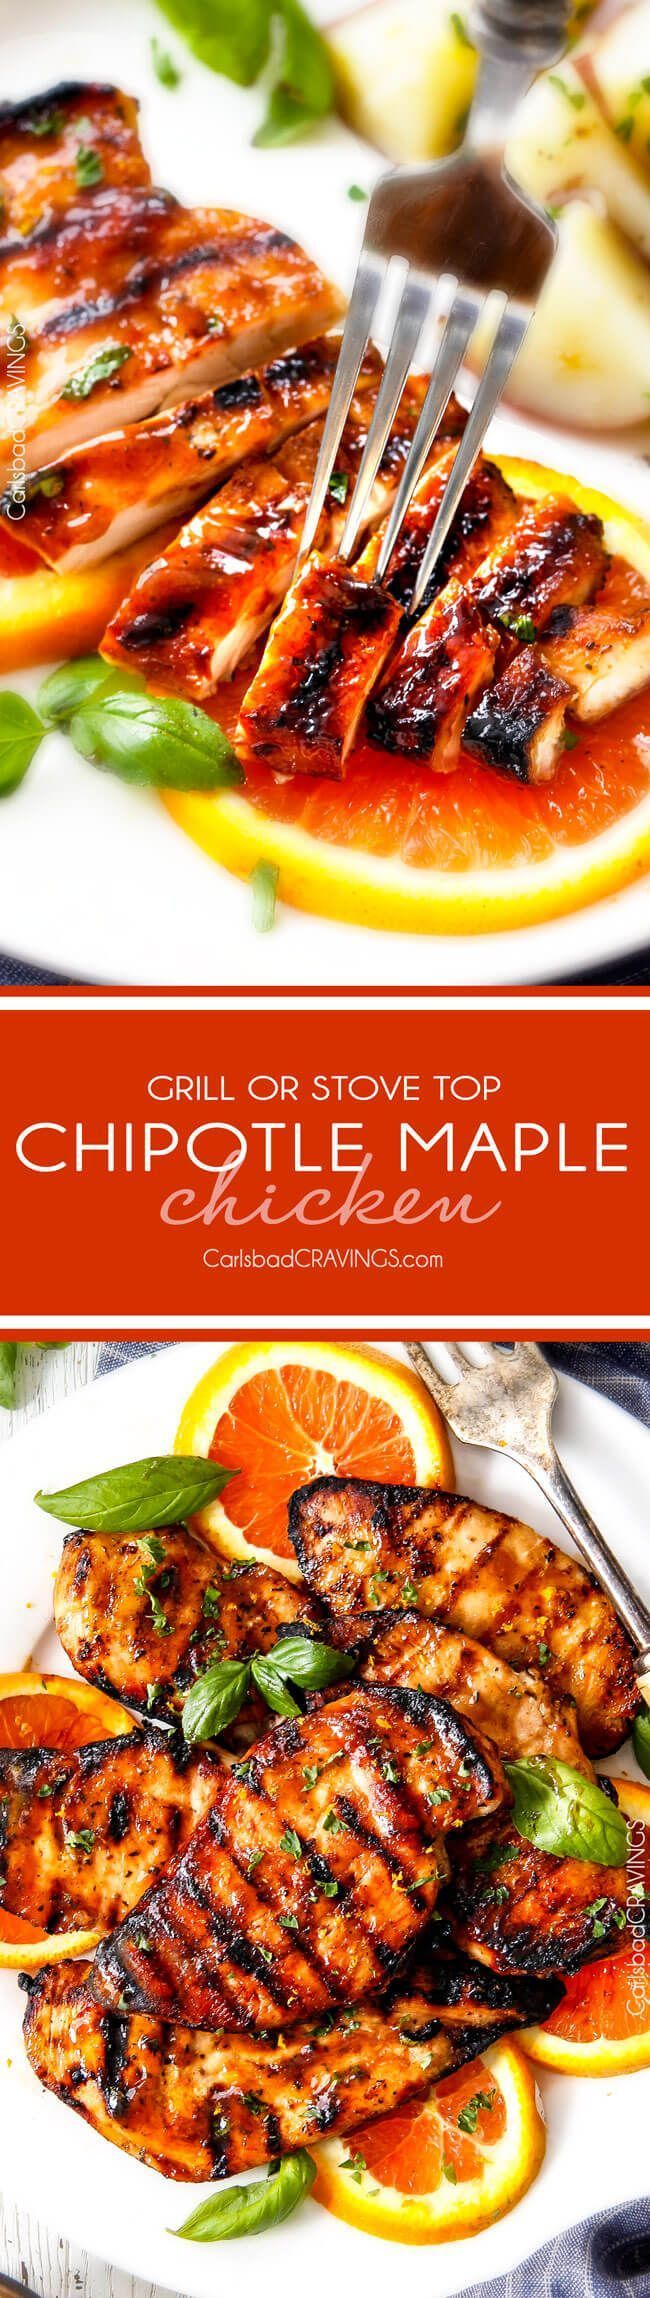 10 Minute prep Grilled or Stove Top Chipotle Maple Chicken - I LOVE this…